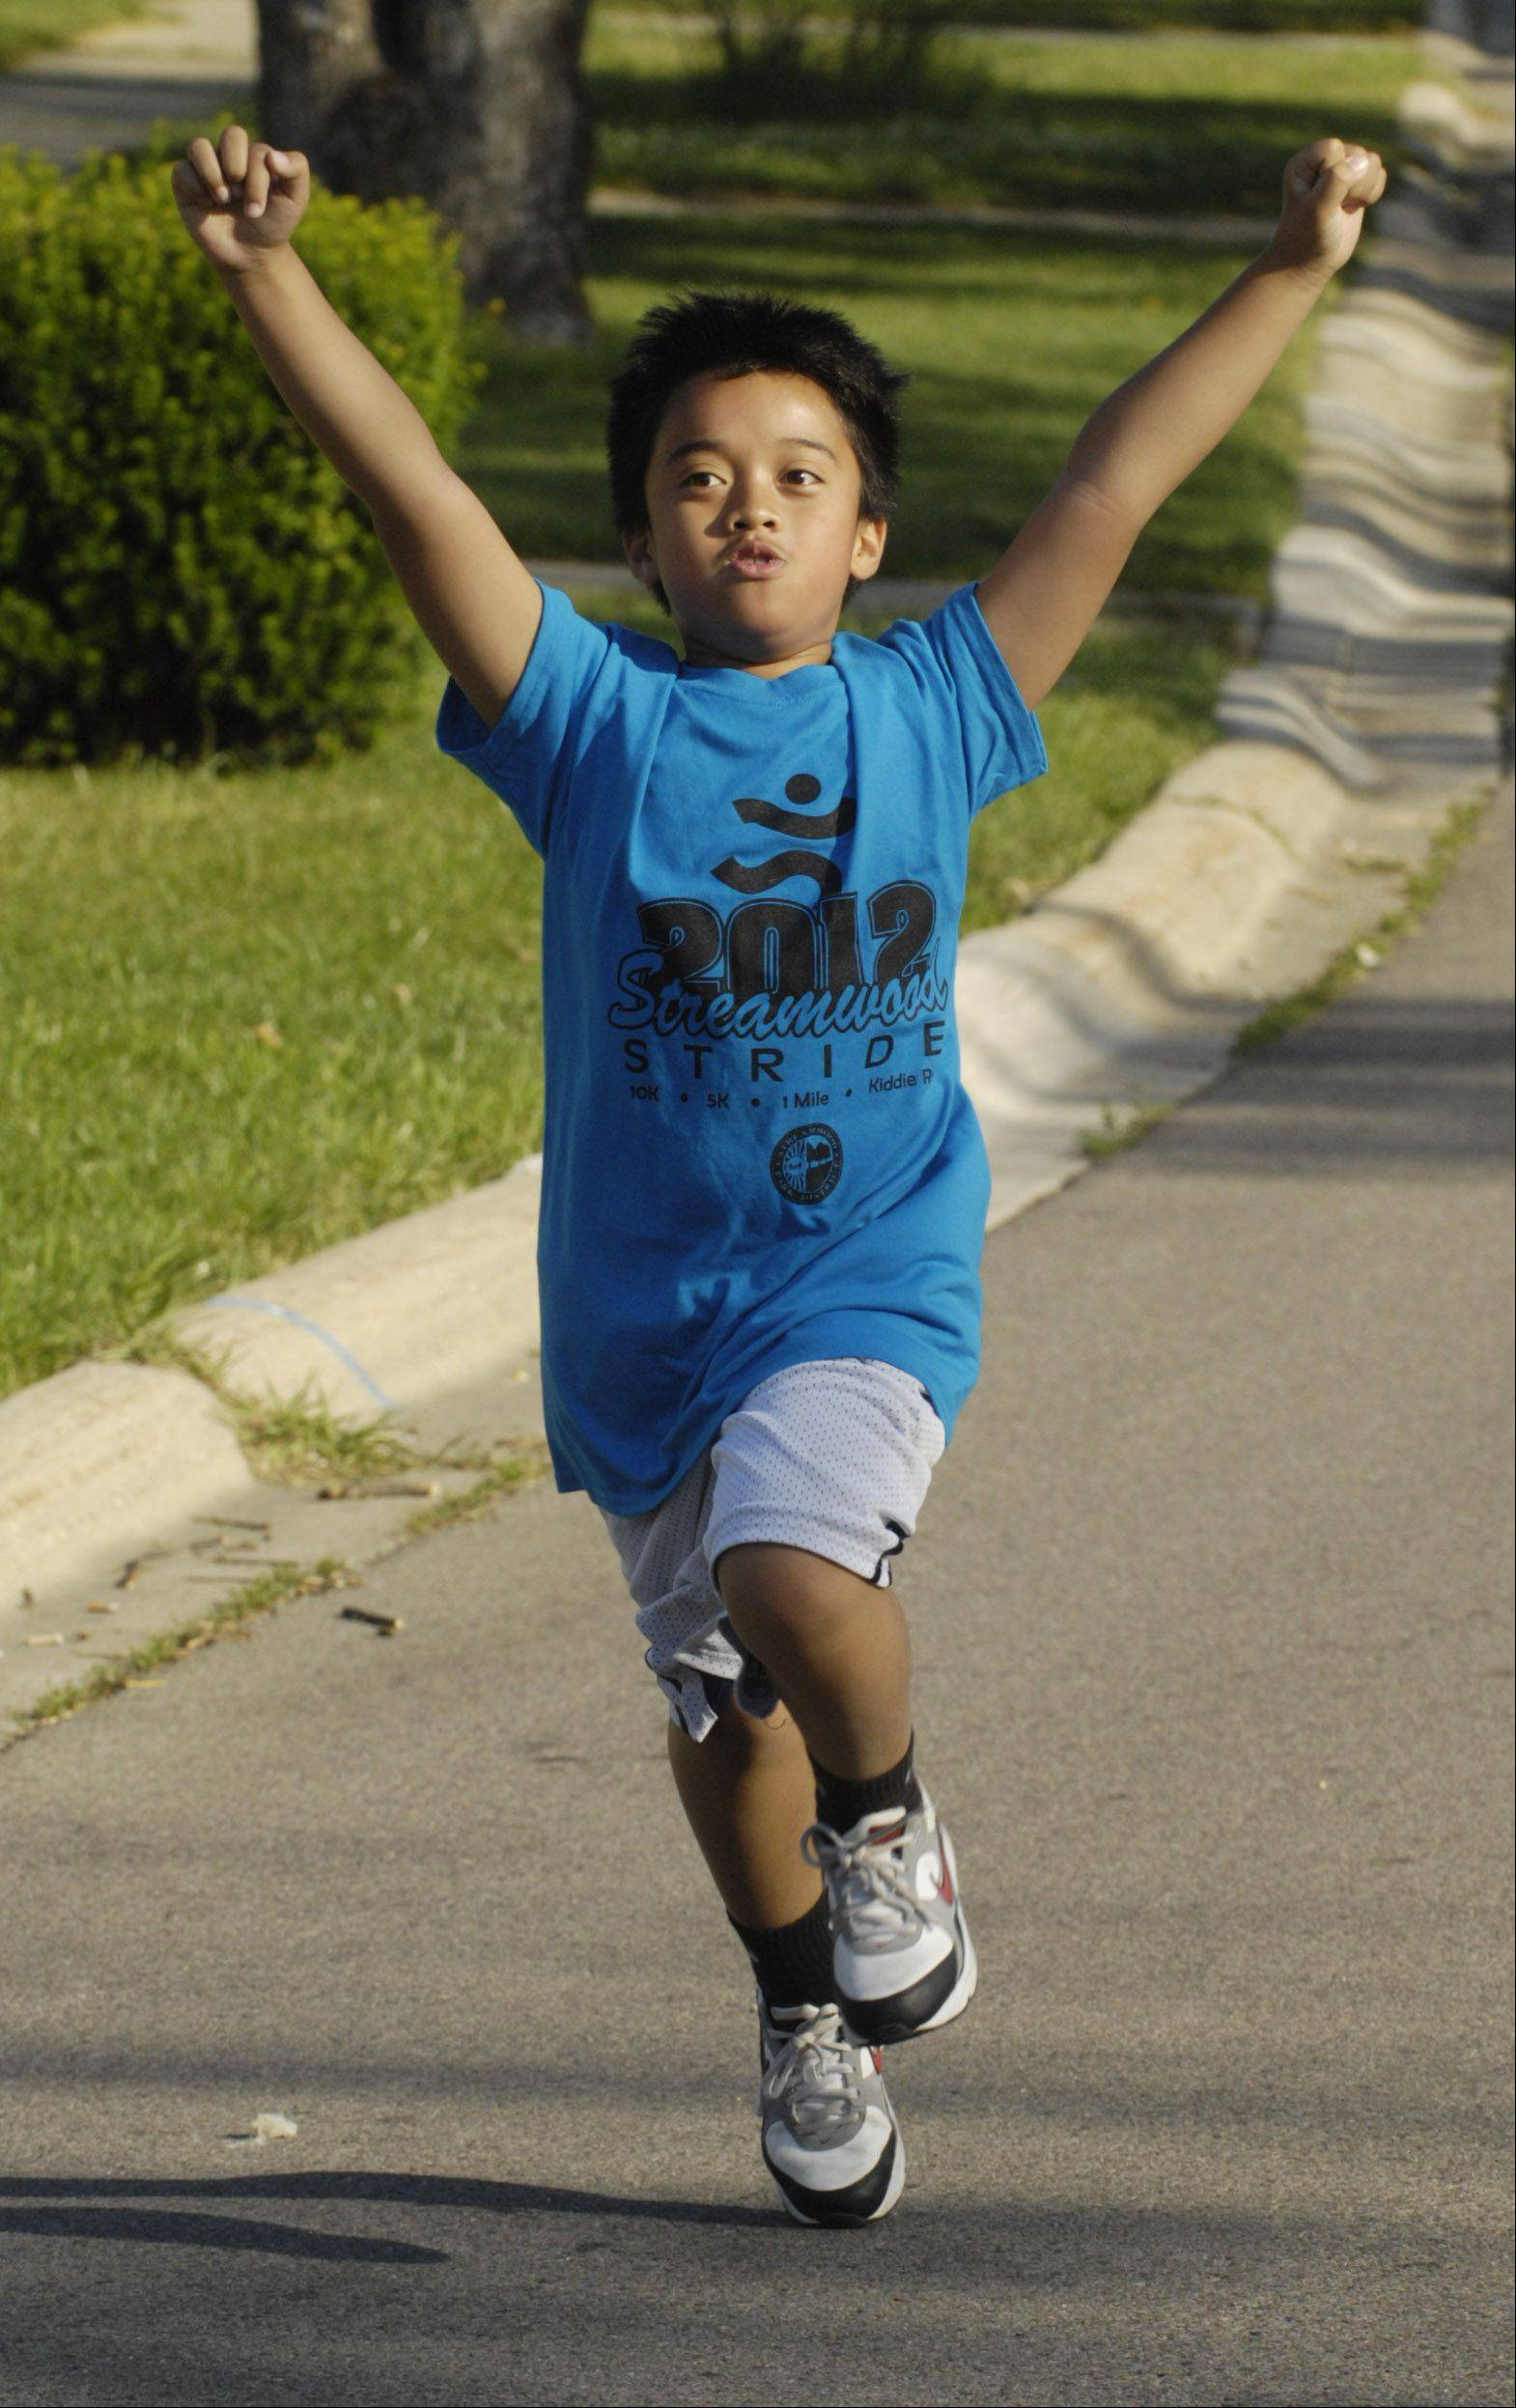 Though not the first runner across the finish line, Jericho Salas, 9, of Streamwood celebrates his completion of the one-mile fun run during the annual Streamwood Stride Saturday.